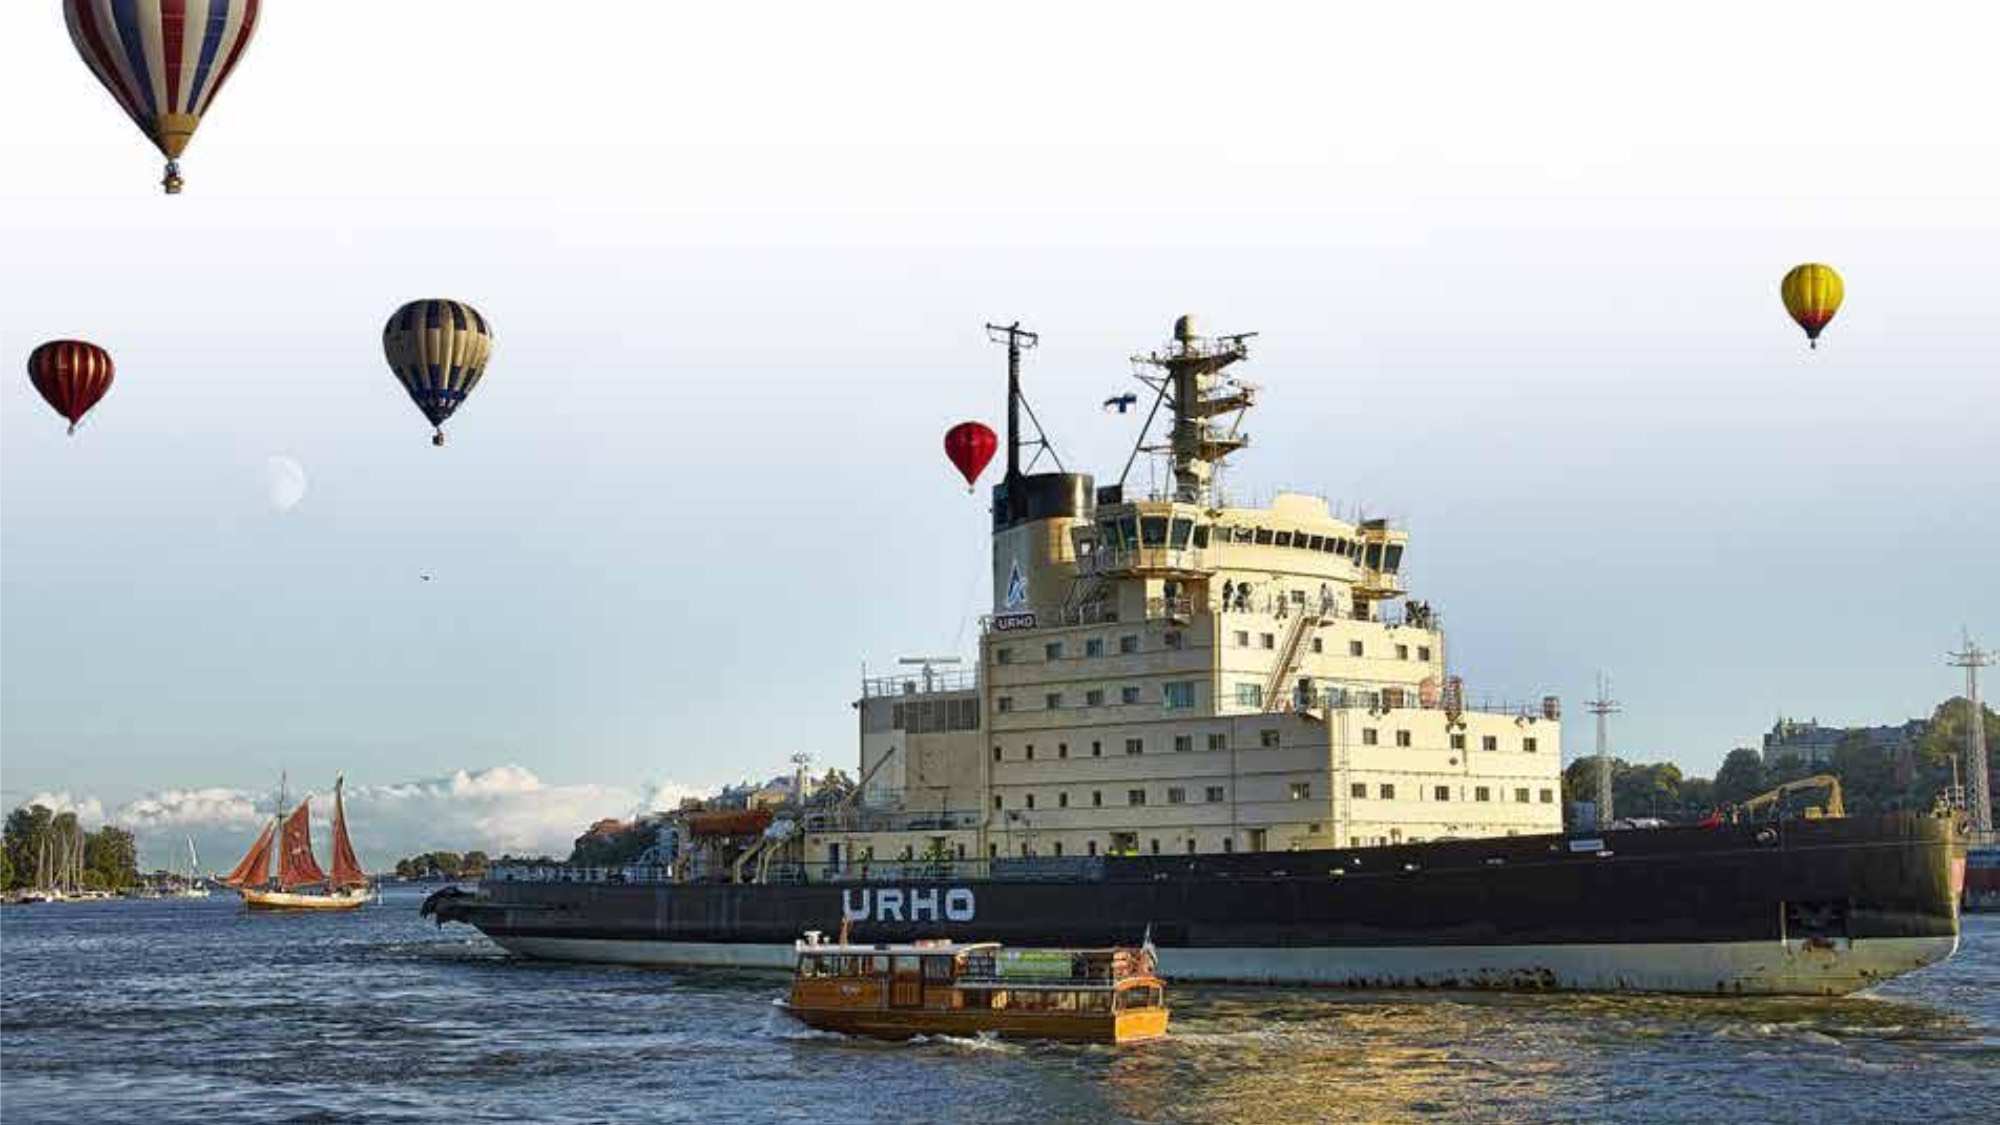 A large icebreaker surrounded by hot air balloons